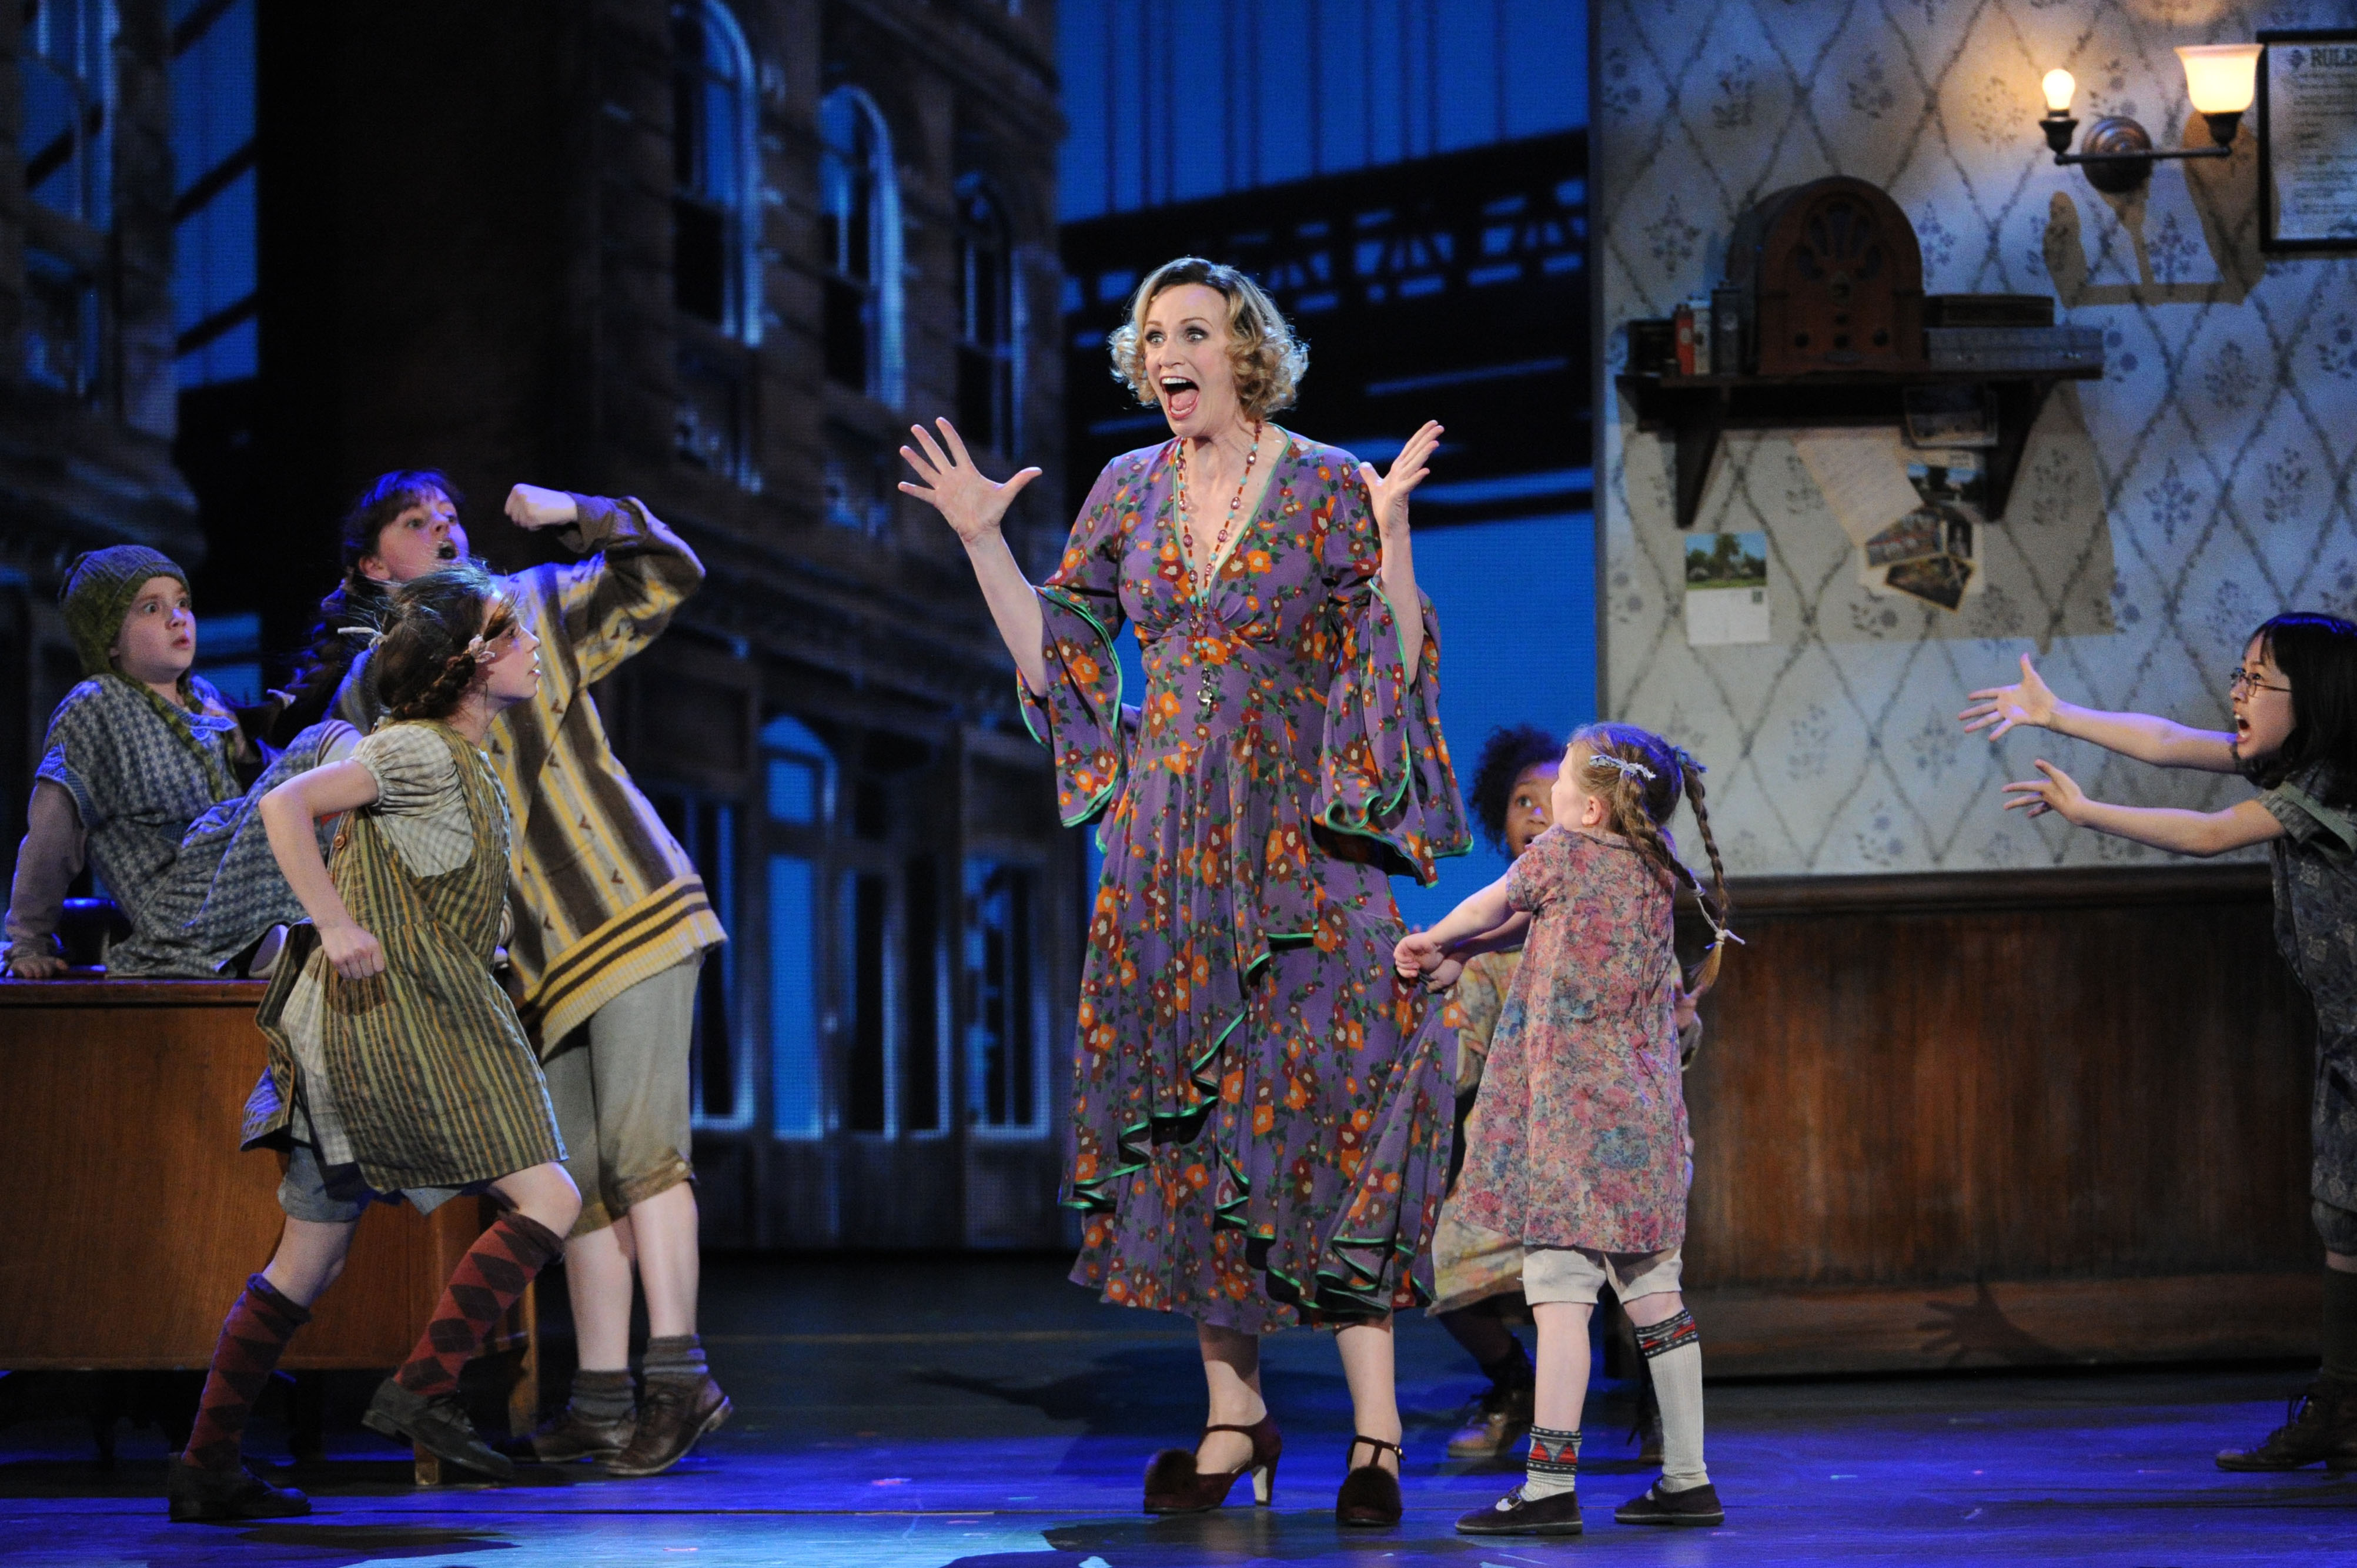 Jane Lynch made her Broadway debut as Miss Hannigan in <i>Annie</i> in 2013. Above, she is seen performing her role on stage at the 67th Annual Tony Awards